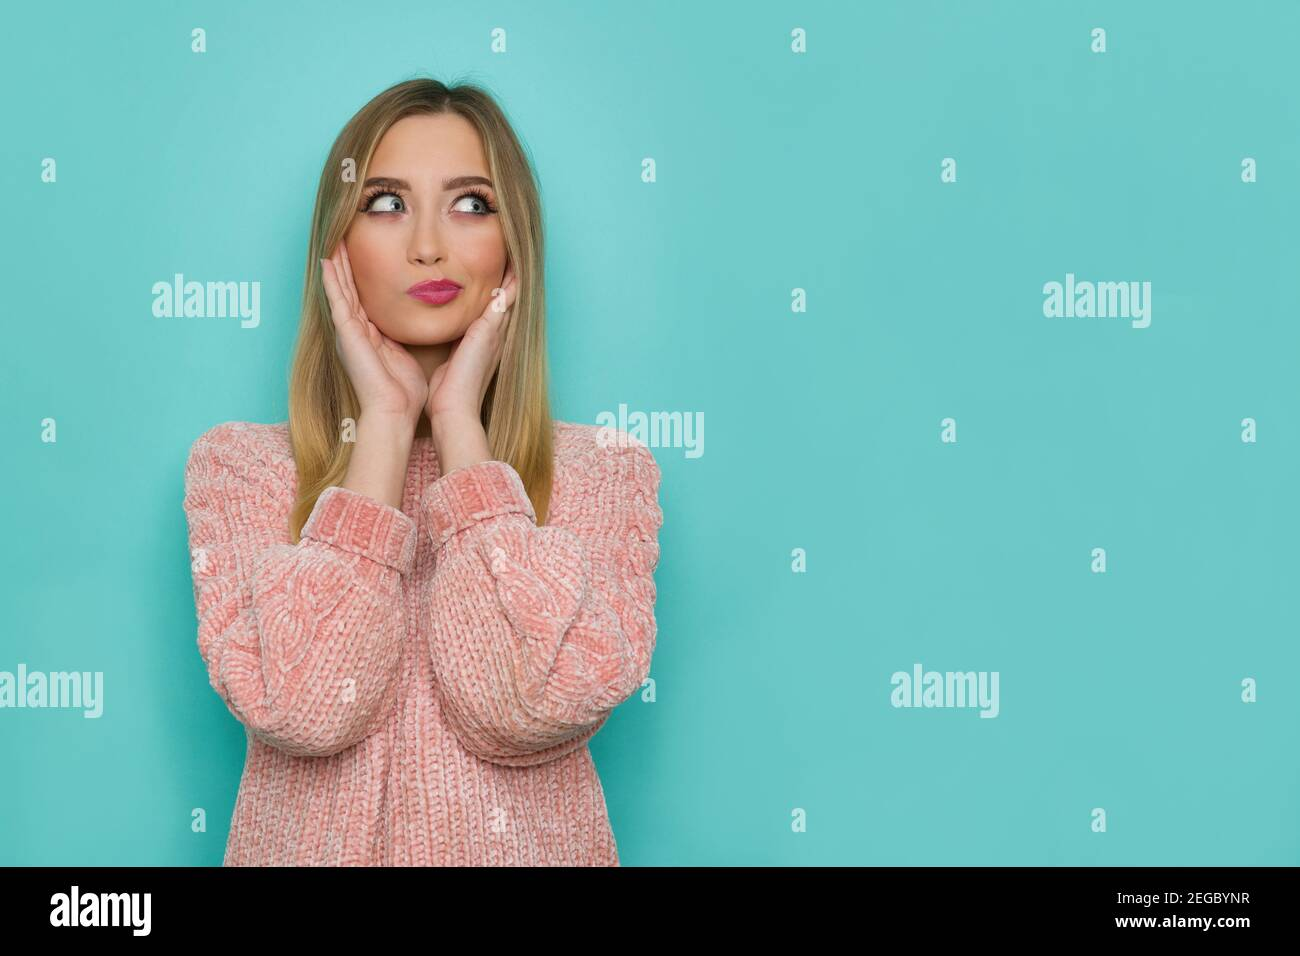 Worried young woman in pink sweater is holding head in hands, looking at the side and thinking. Waist up studio shot on turquoise background. Stock Photo